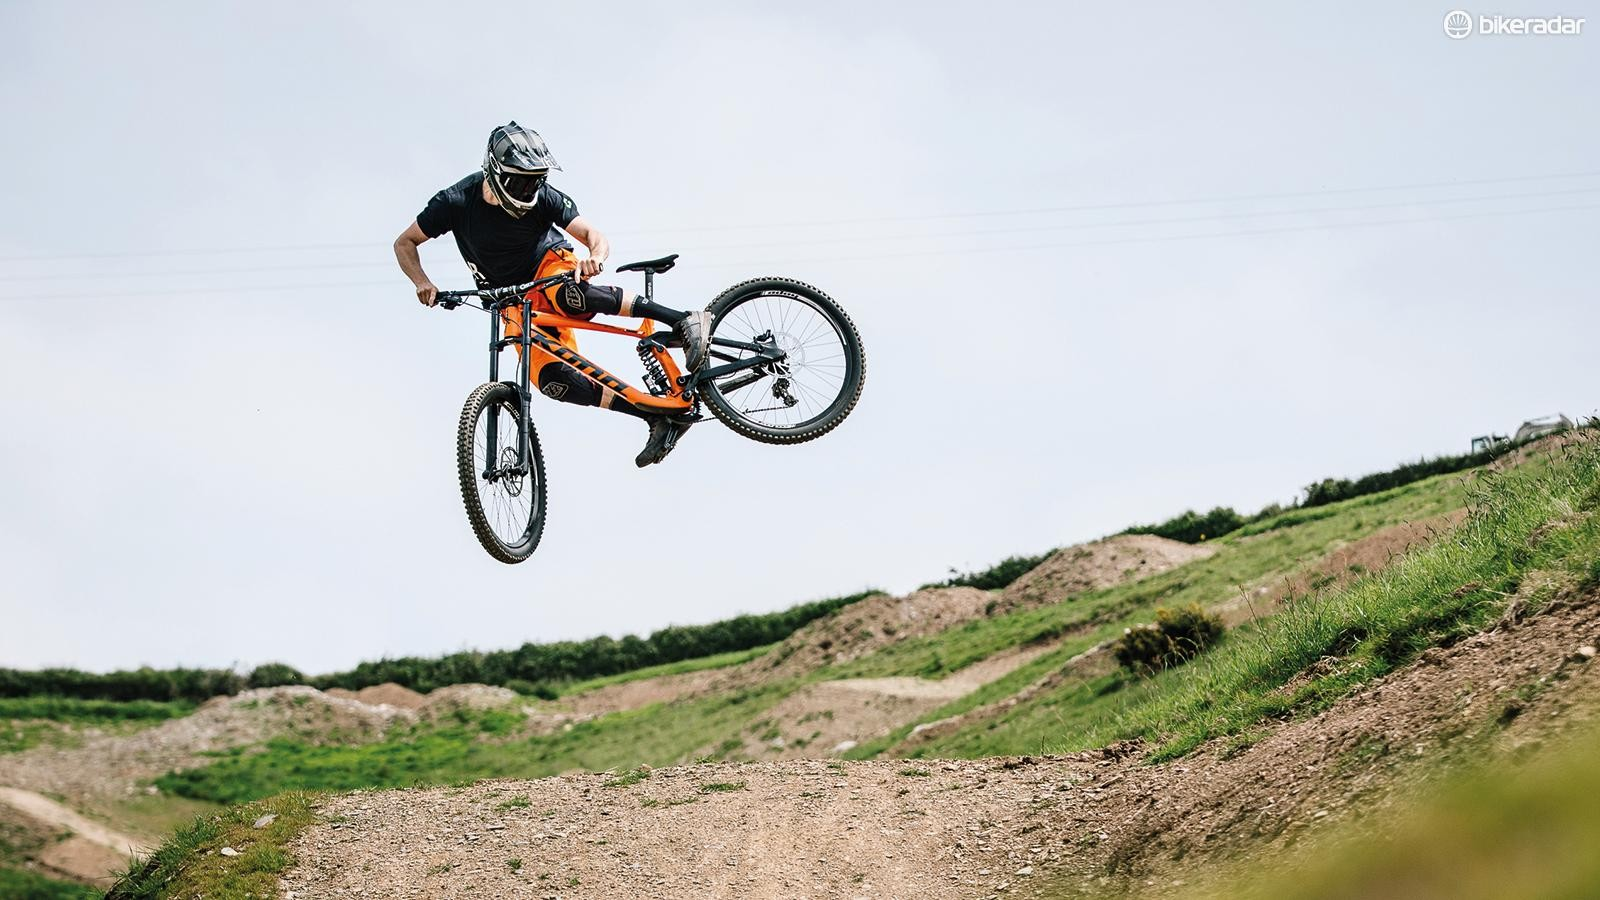 How to whip a mountain bike